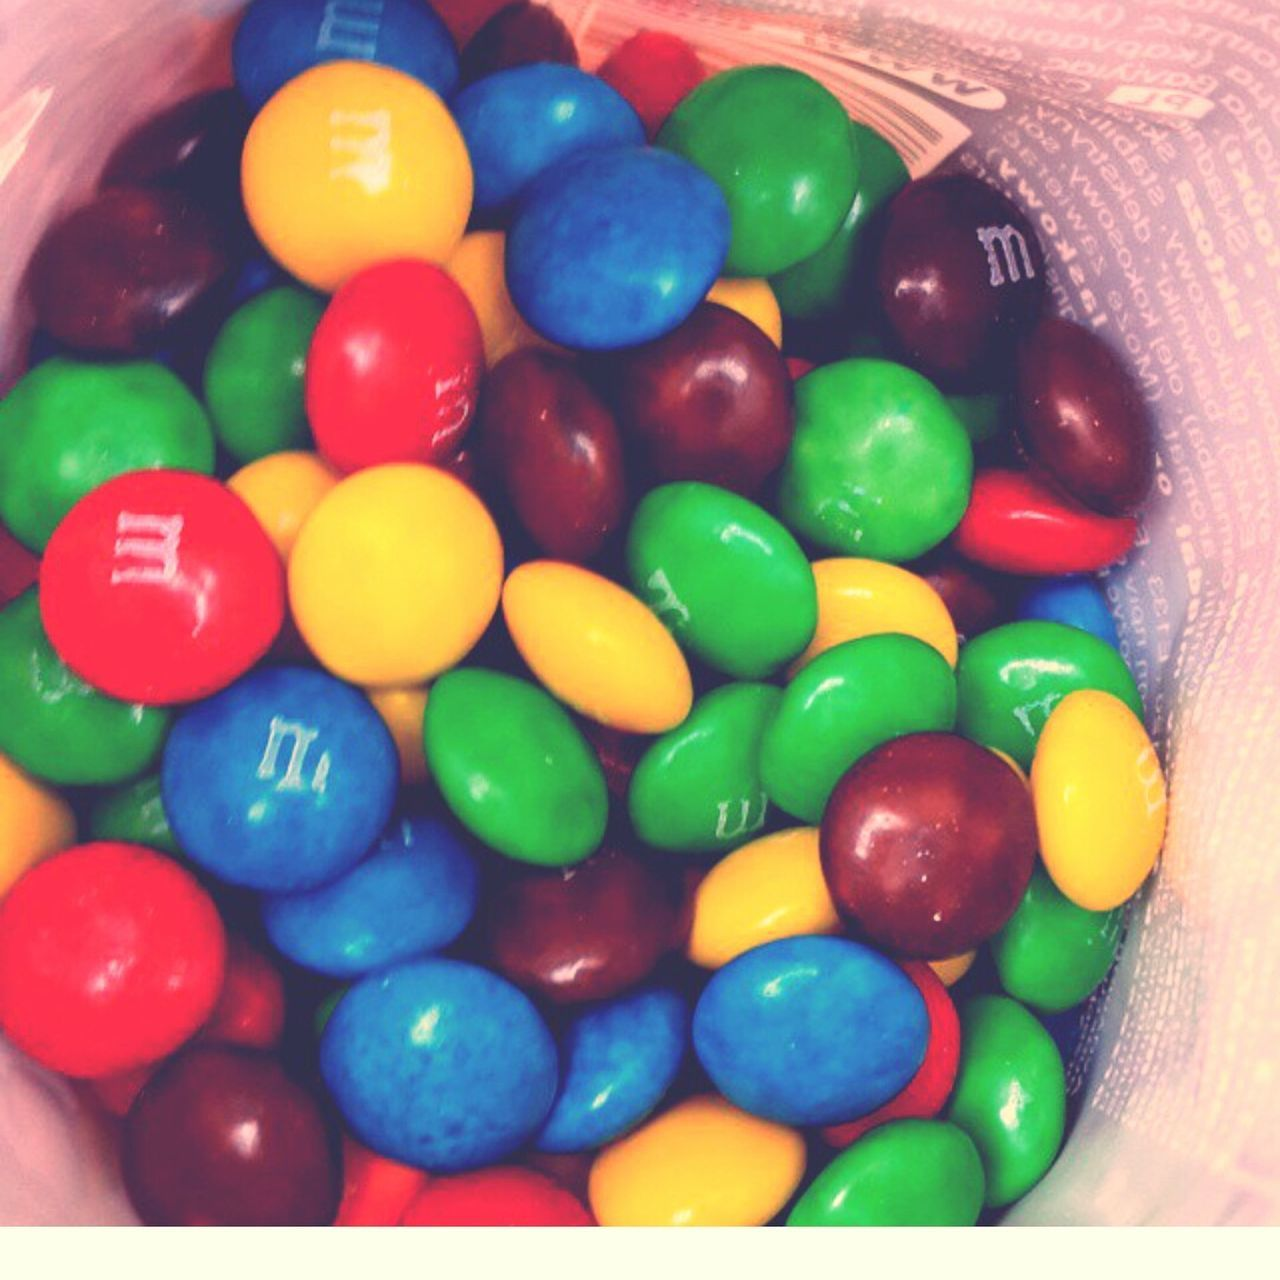 U3 Chocolate M&m's Taking Photos Enjoying Life Hello World Yamyy Open Edit Photo Picture